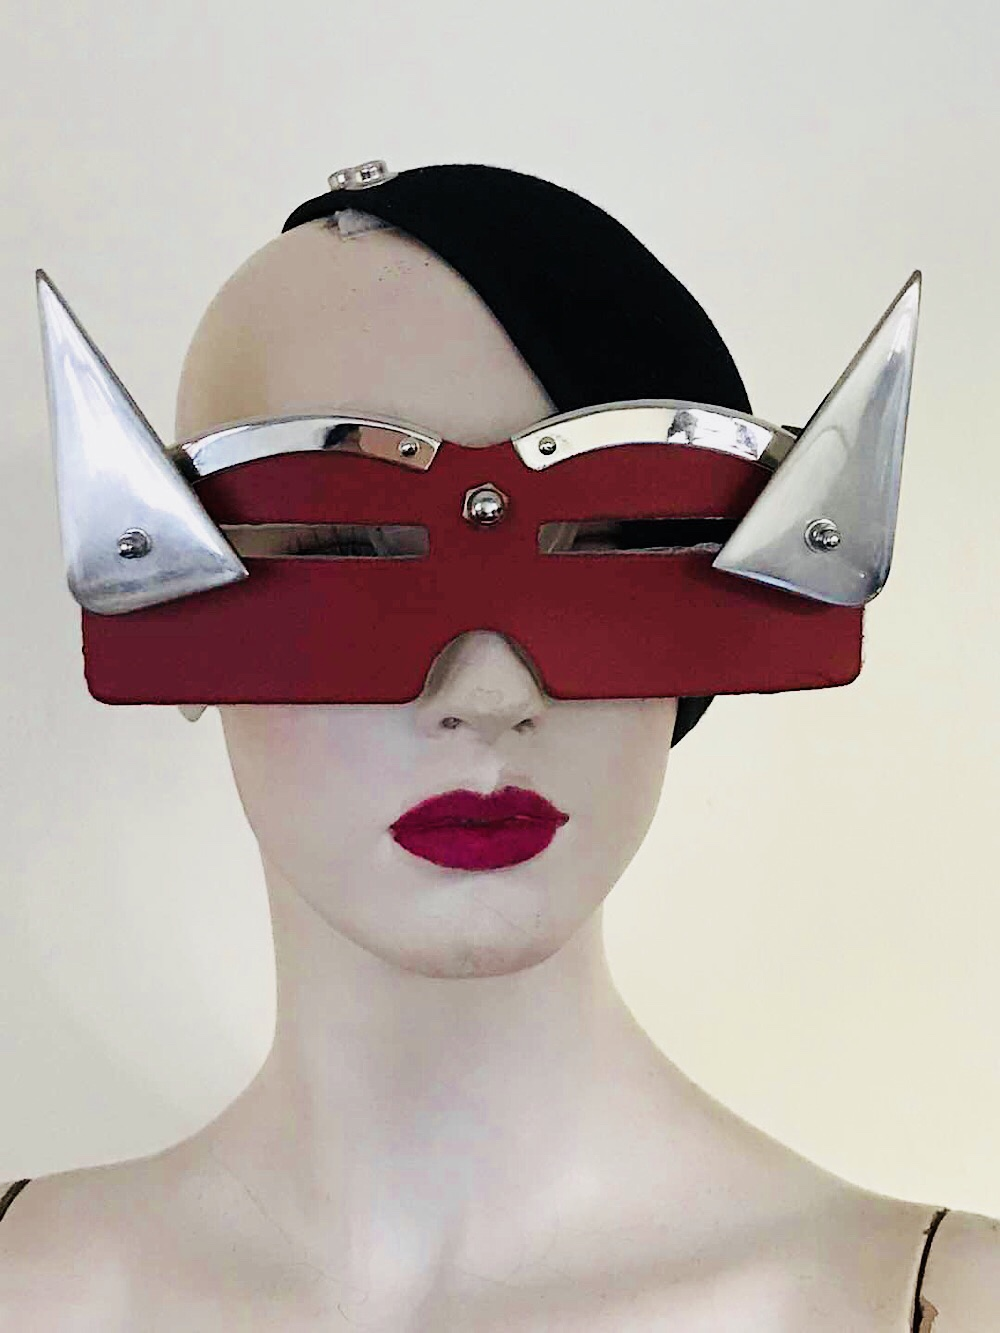 Artistic eye wear, red leather mask with metal triangular horns for filming theatre